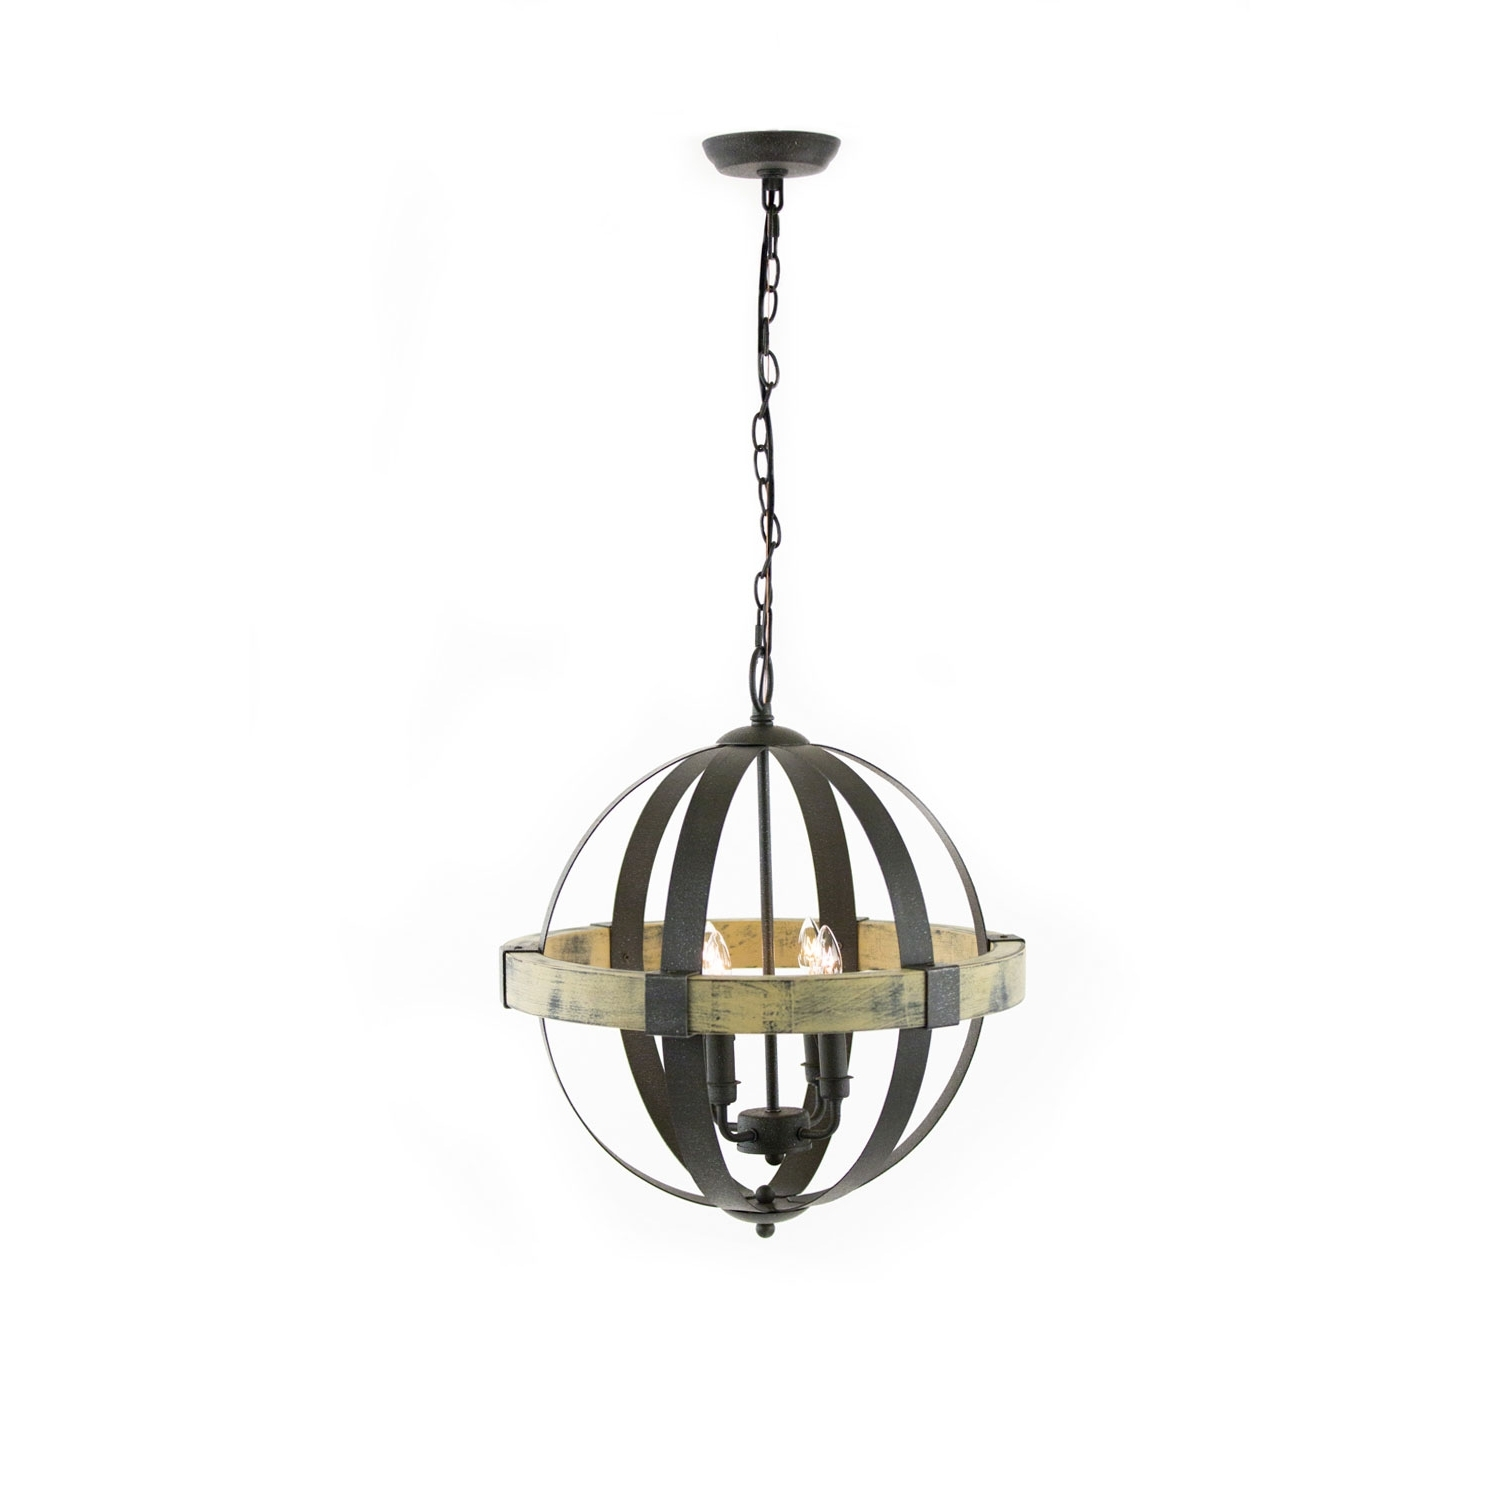 500+ Crystal, Wrought Iron & Mini Chandeliers In Throughout Small Rustic Crystal Chandeliers (View 14 of 15)